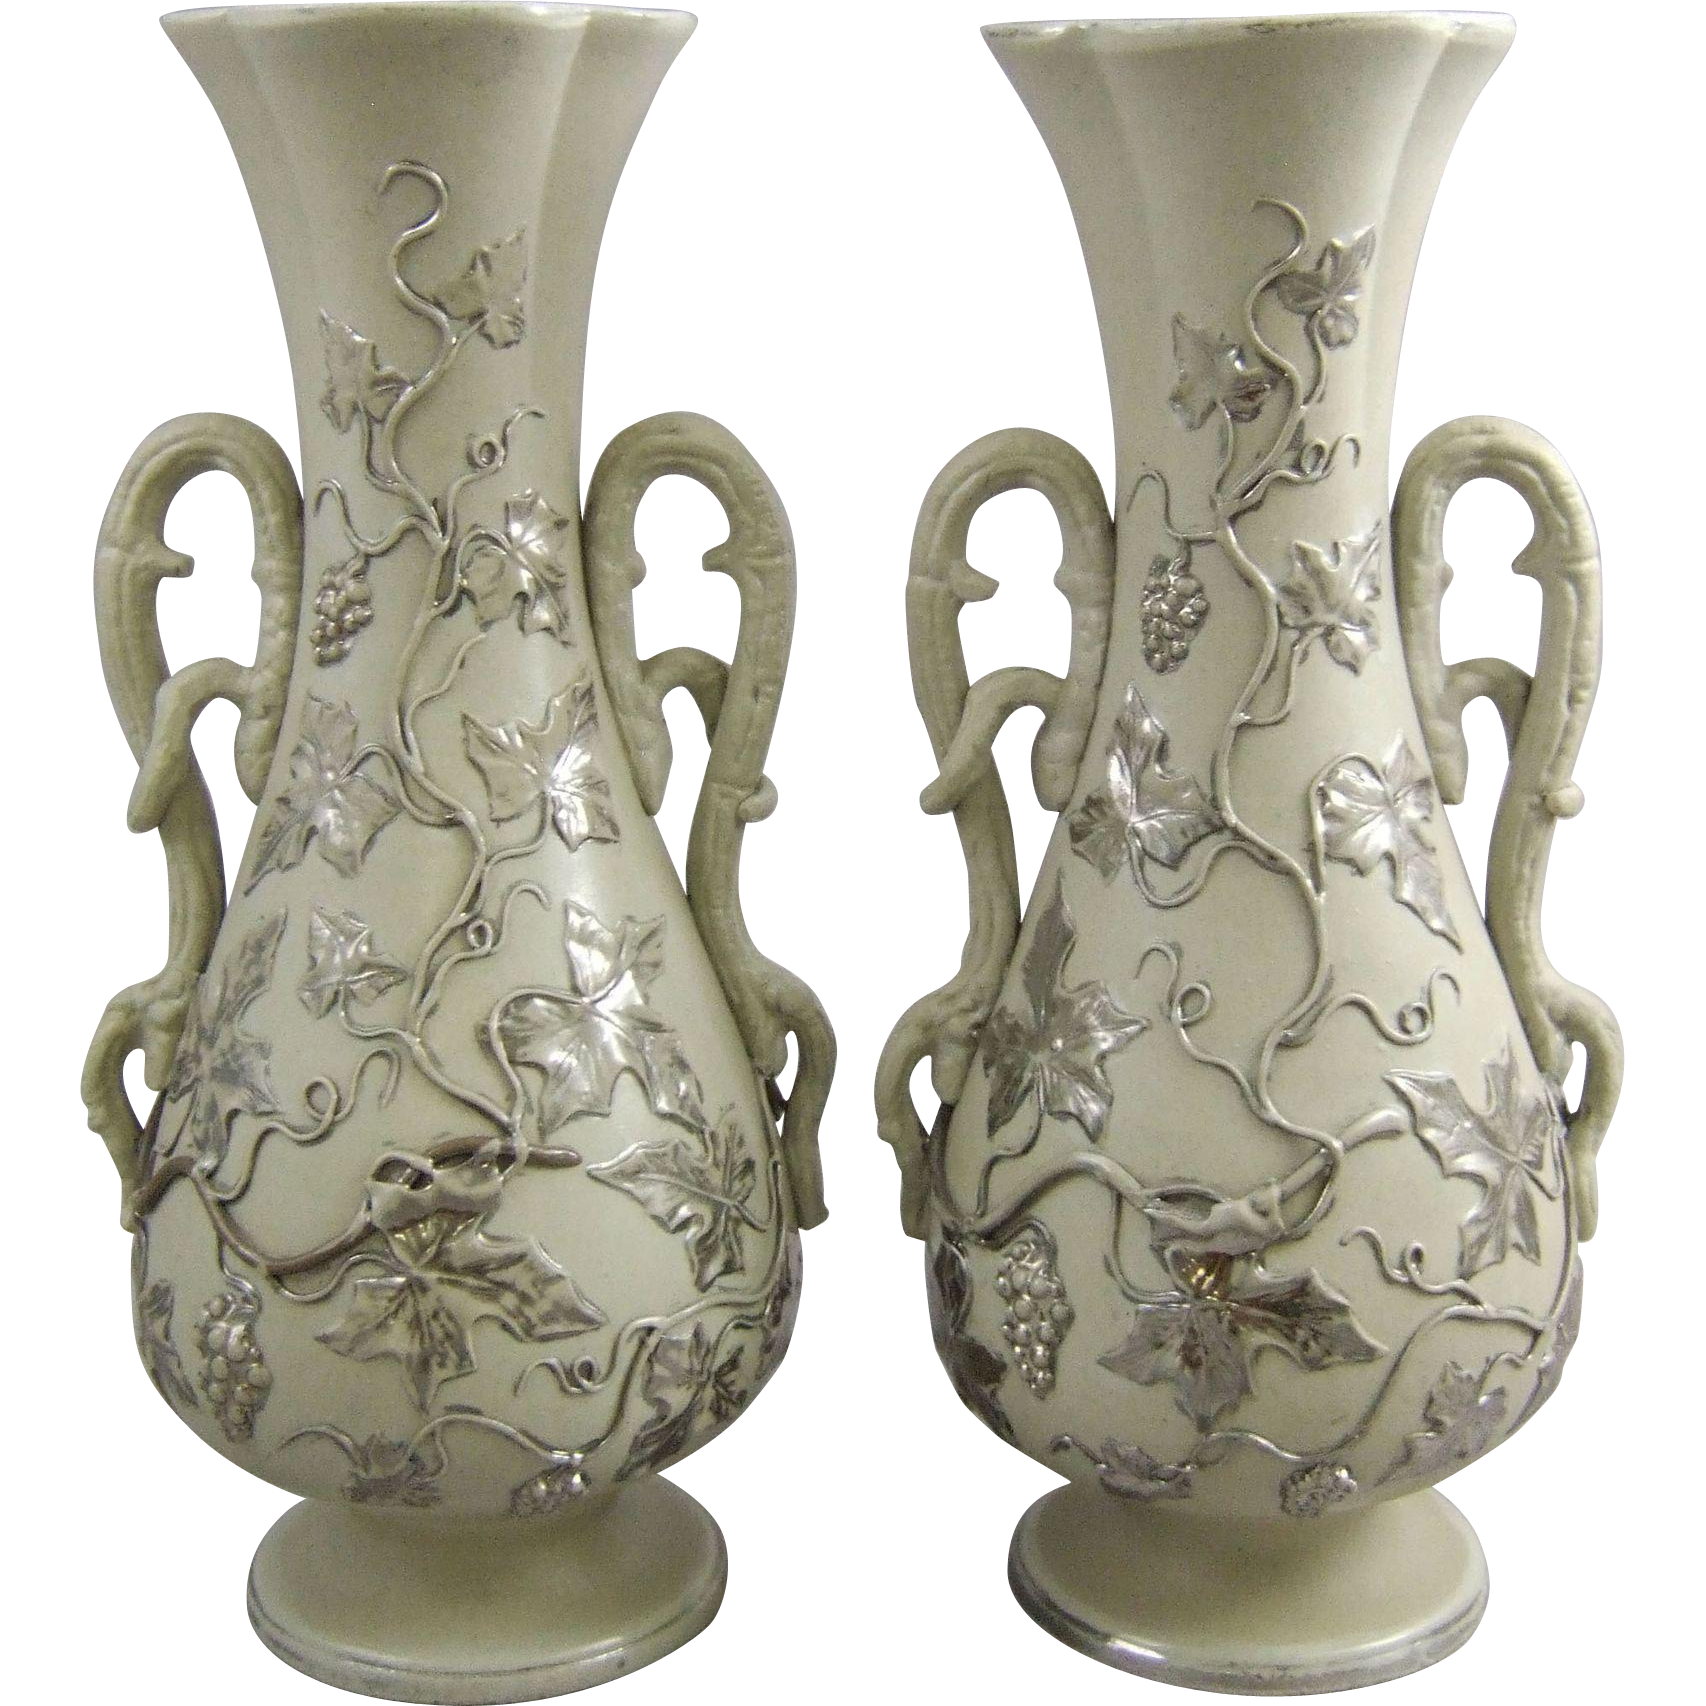 Antique Villeroy & Boch Mettlach Ceramic Pottery Mantle Vases with Platinum Grapevine Decor